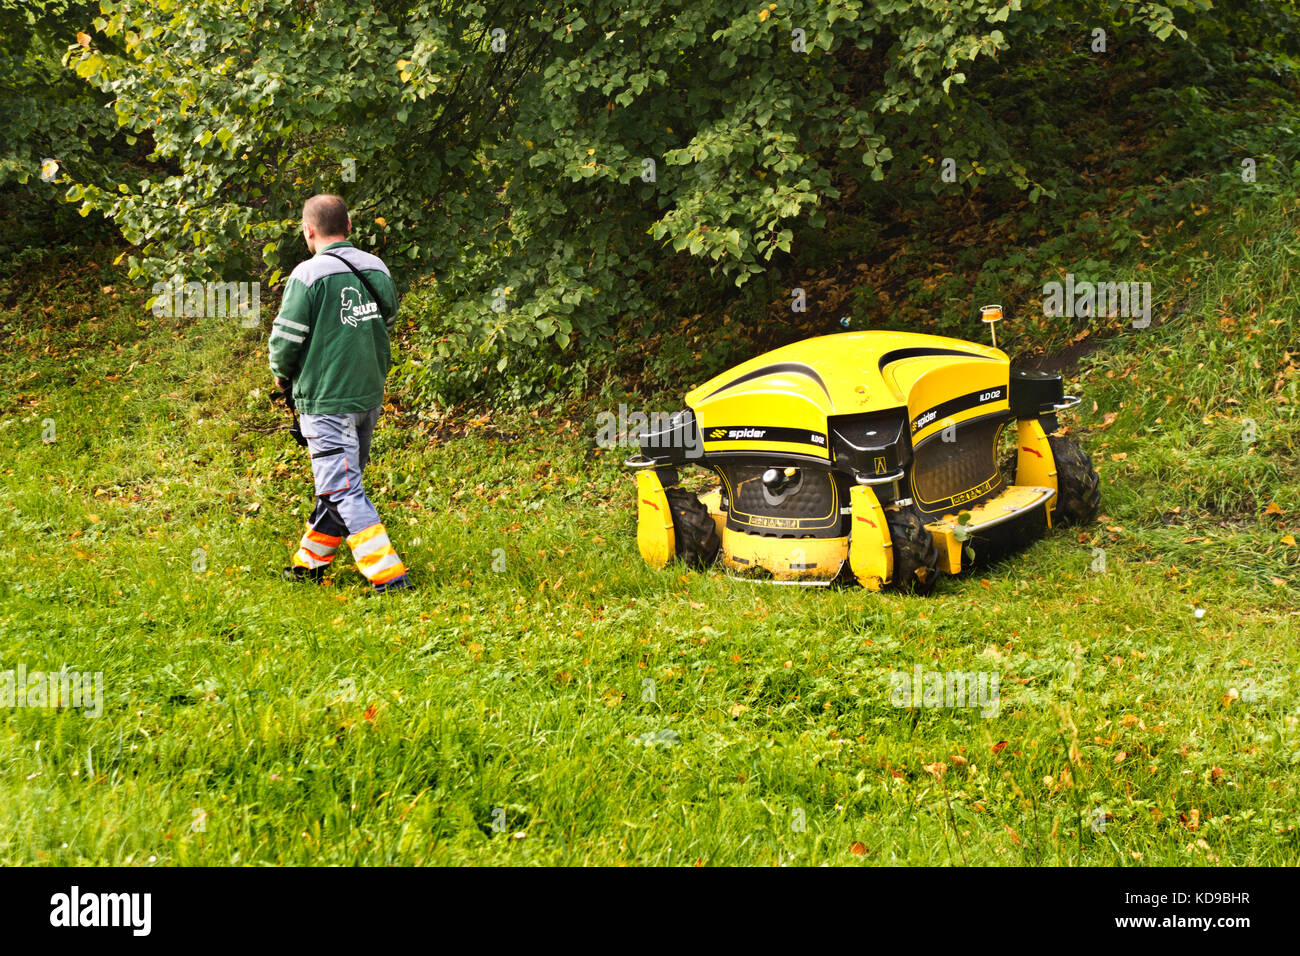 public park maintenance may with robotic lawnmower - Stock Image